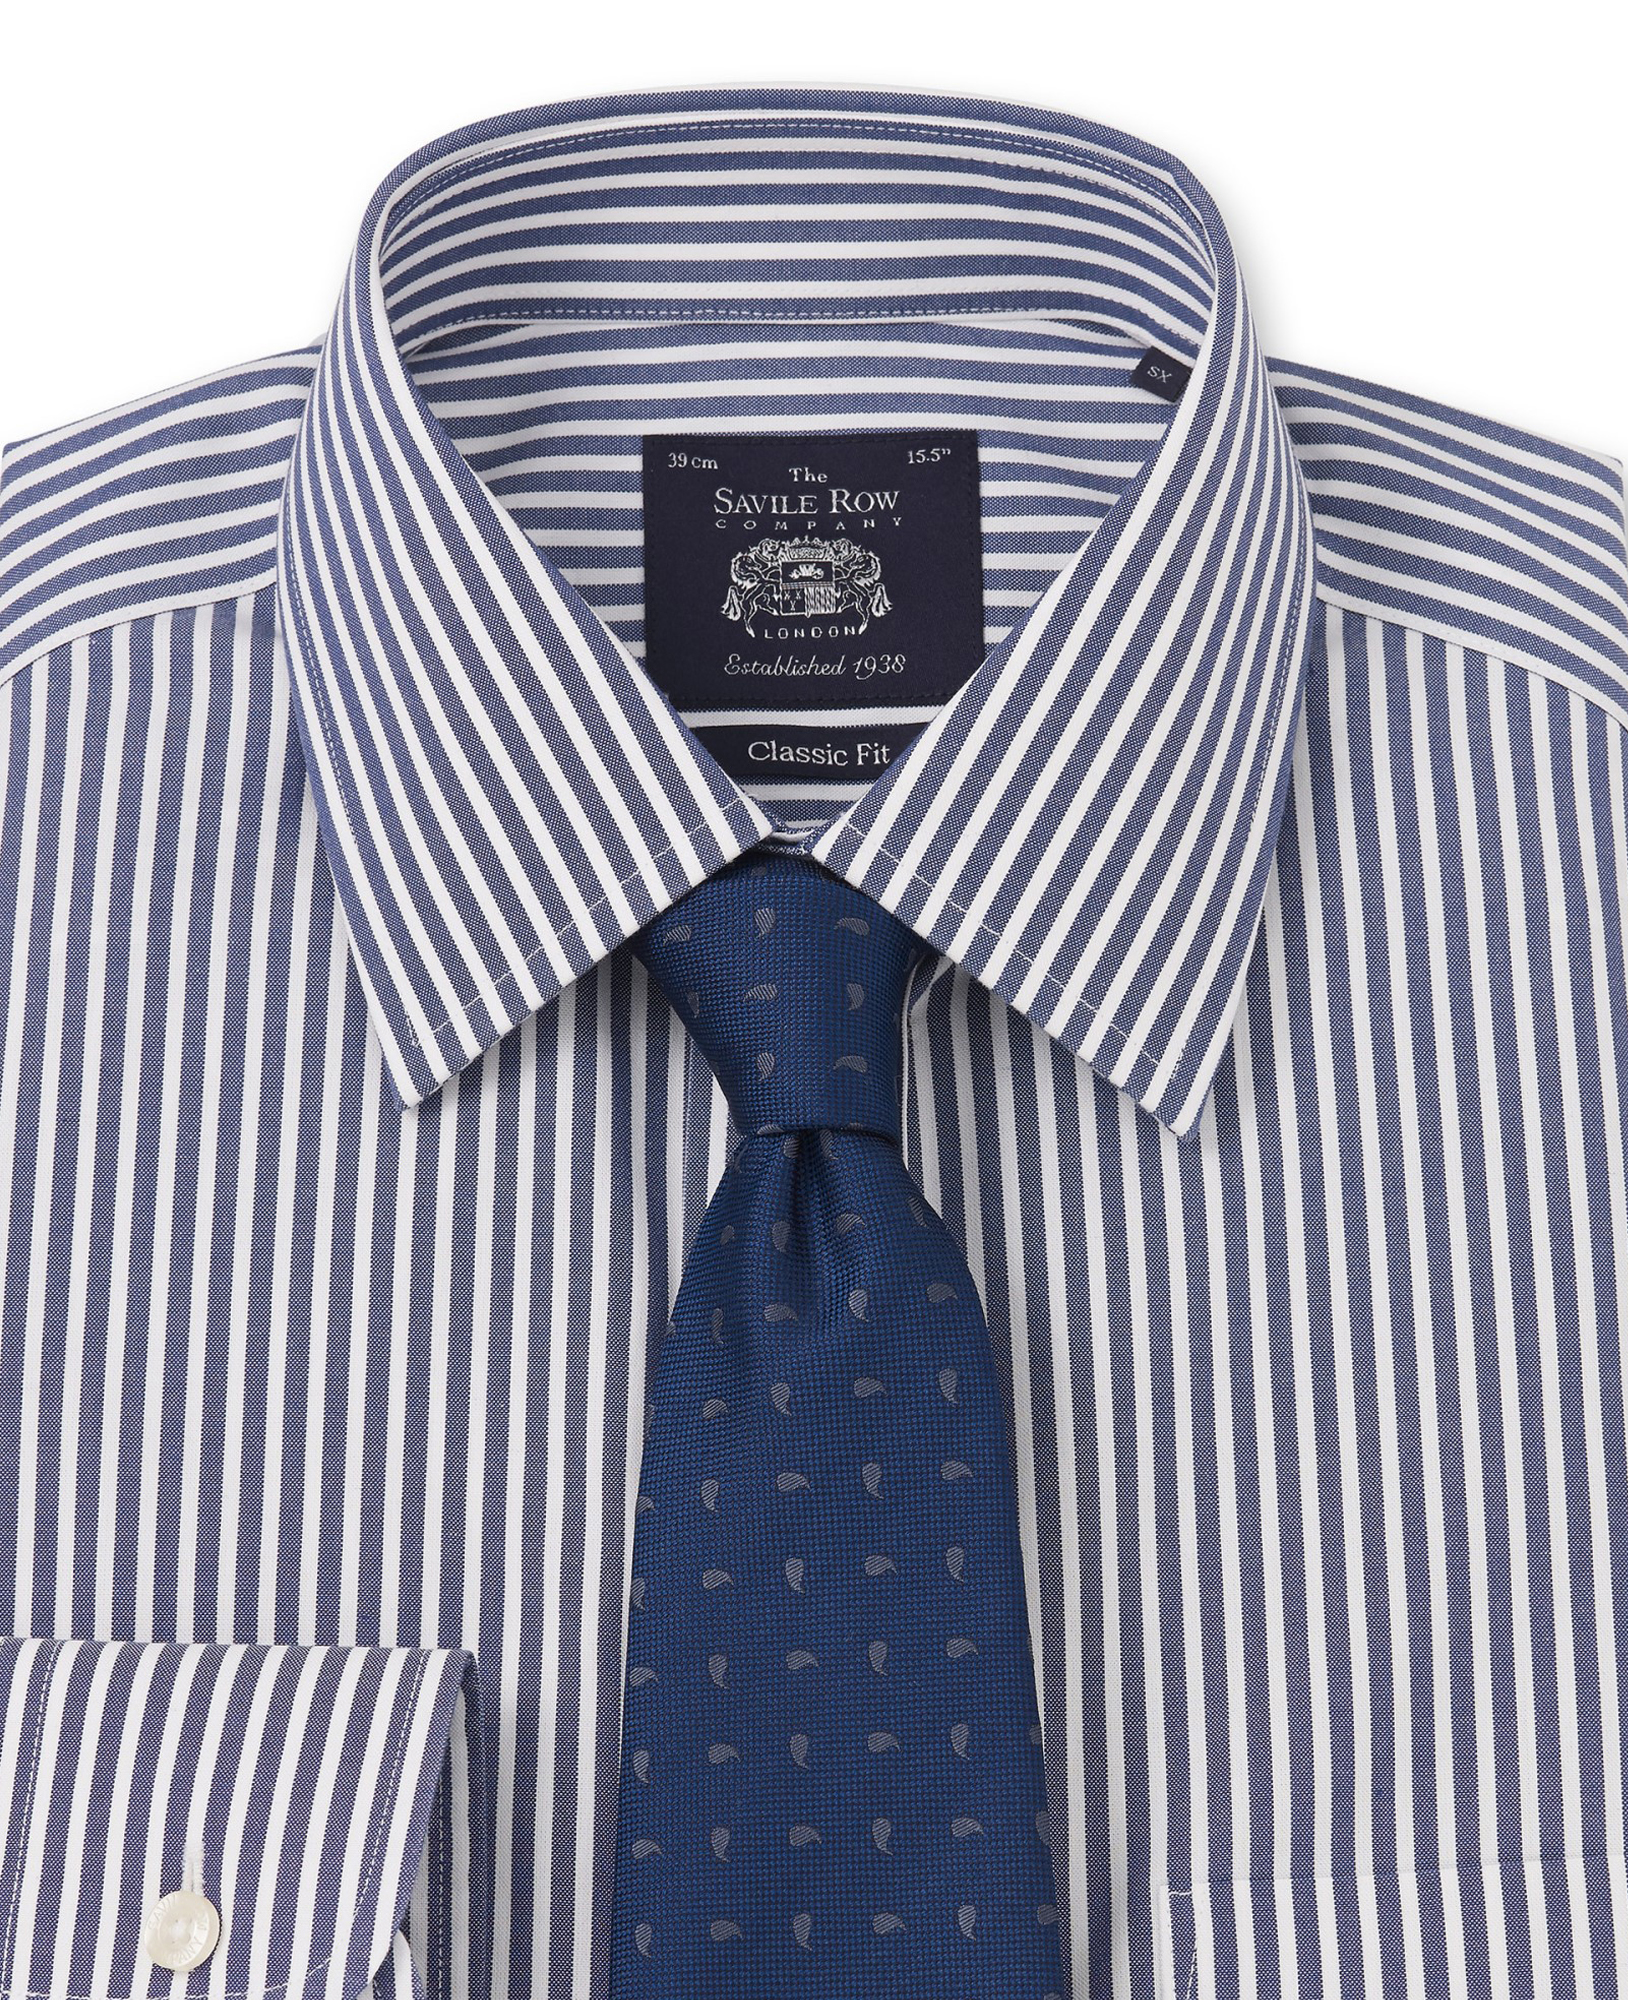 NON-IRON NAVY WHITE BENGAL STRIPE CLASSIC FIT SHIRT- SINGLE CUFF-969SNAV